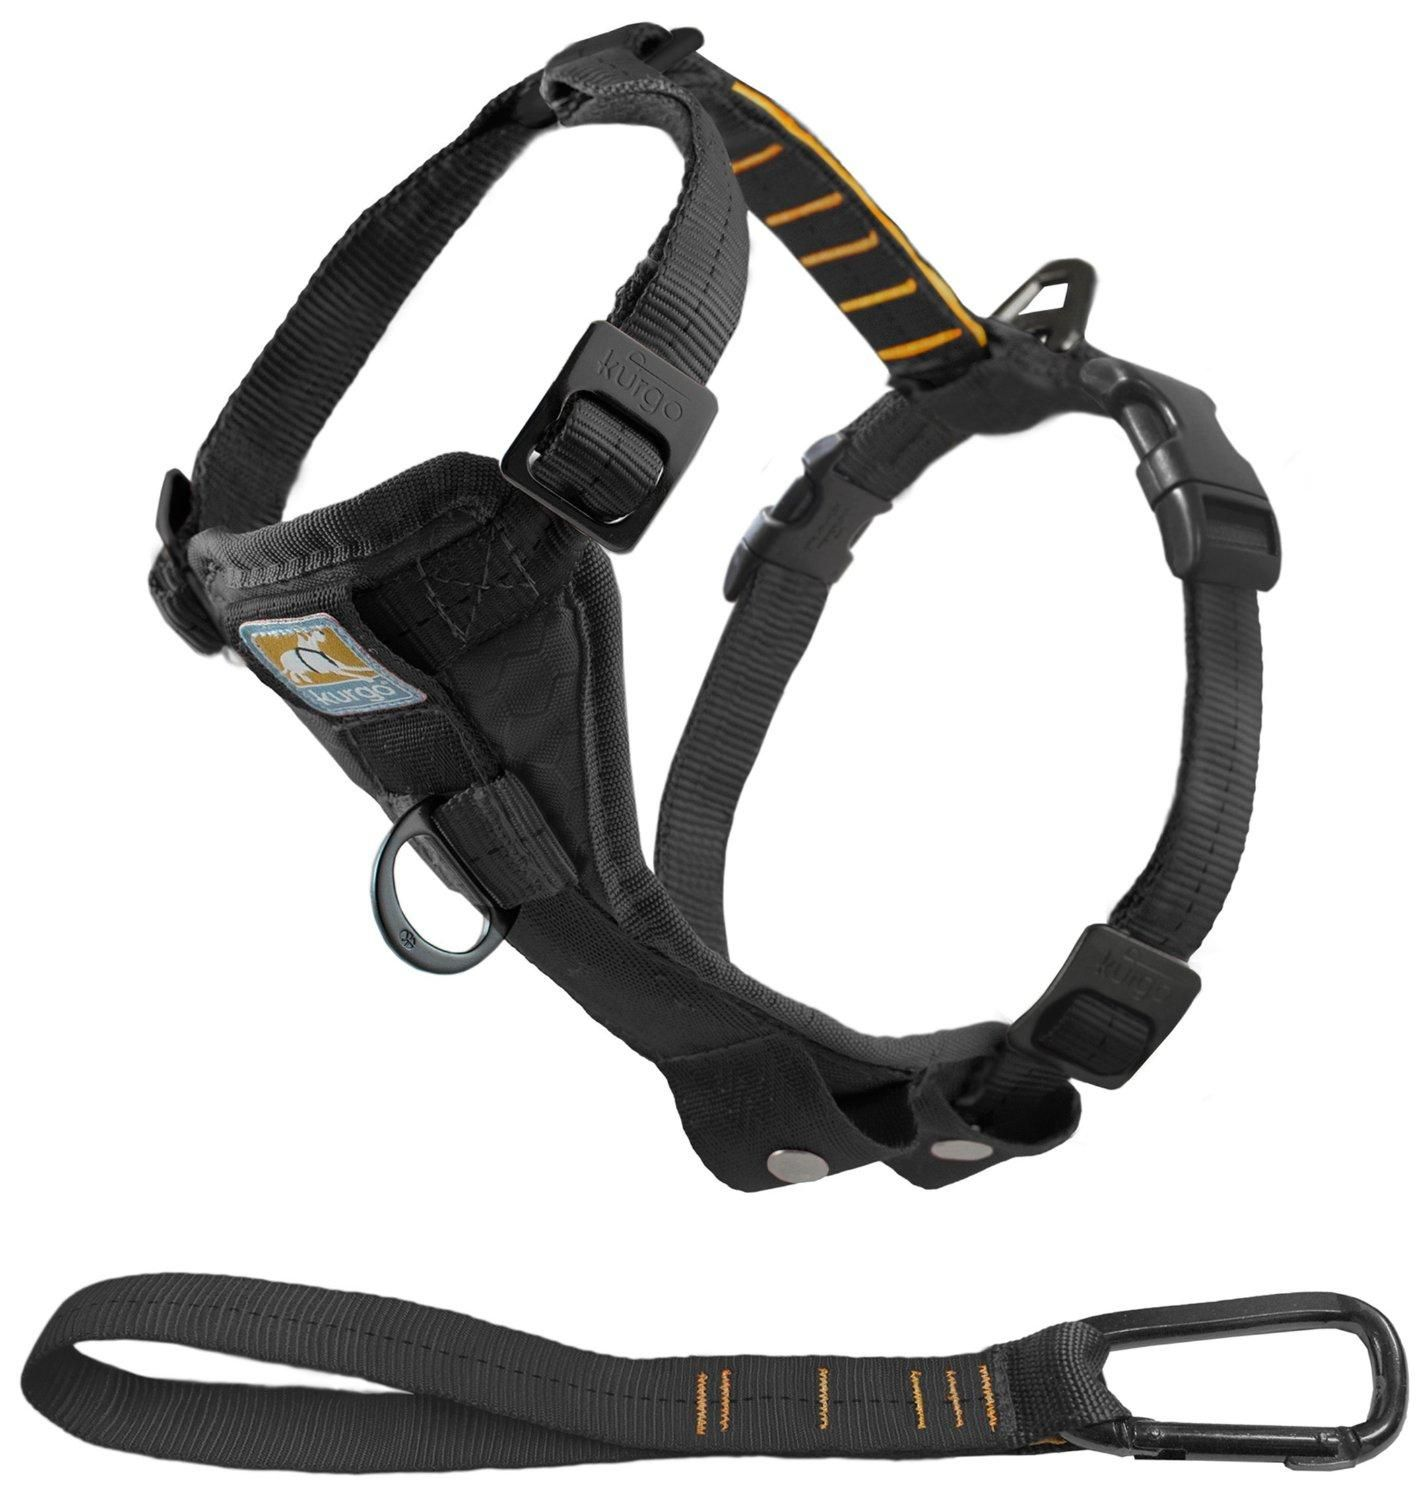 Pierre Leather Dog Harness Black Dog Harness Dog Accessories